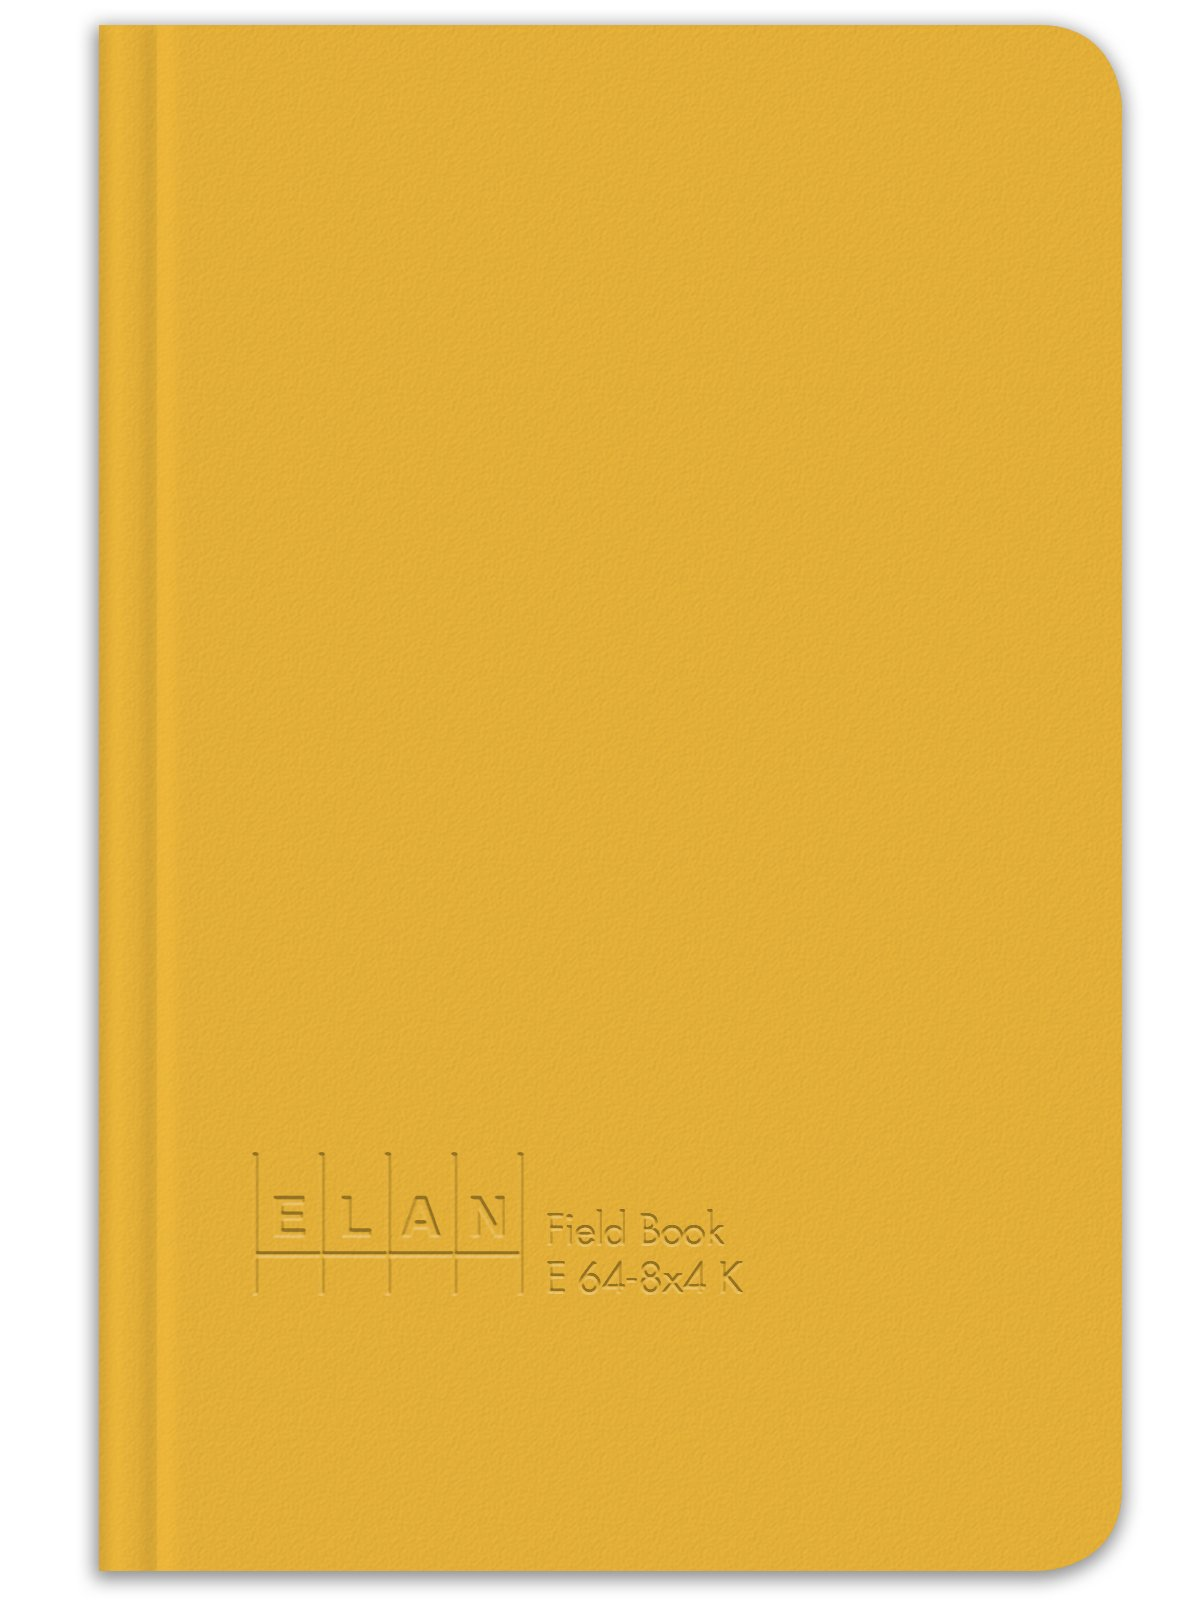 Elan Publishing Company E64-8x4K King Size Field Surveying Book 6 x 9, Yellow Cover (Pack of 12)